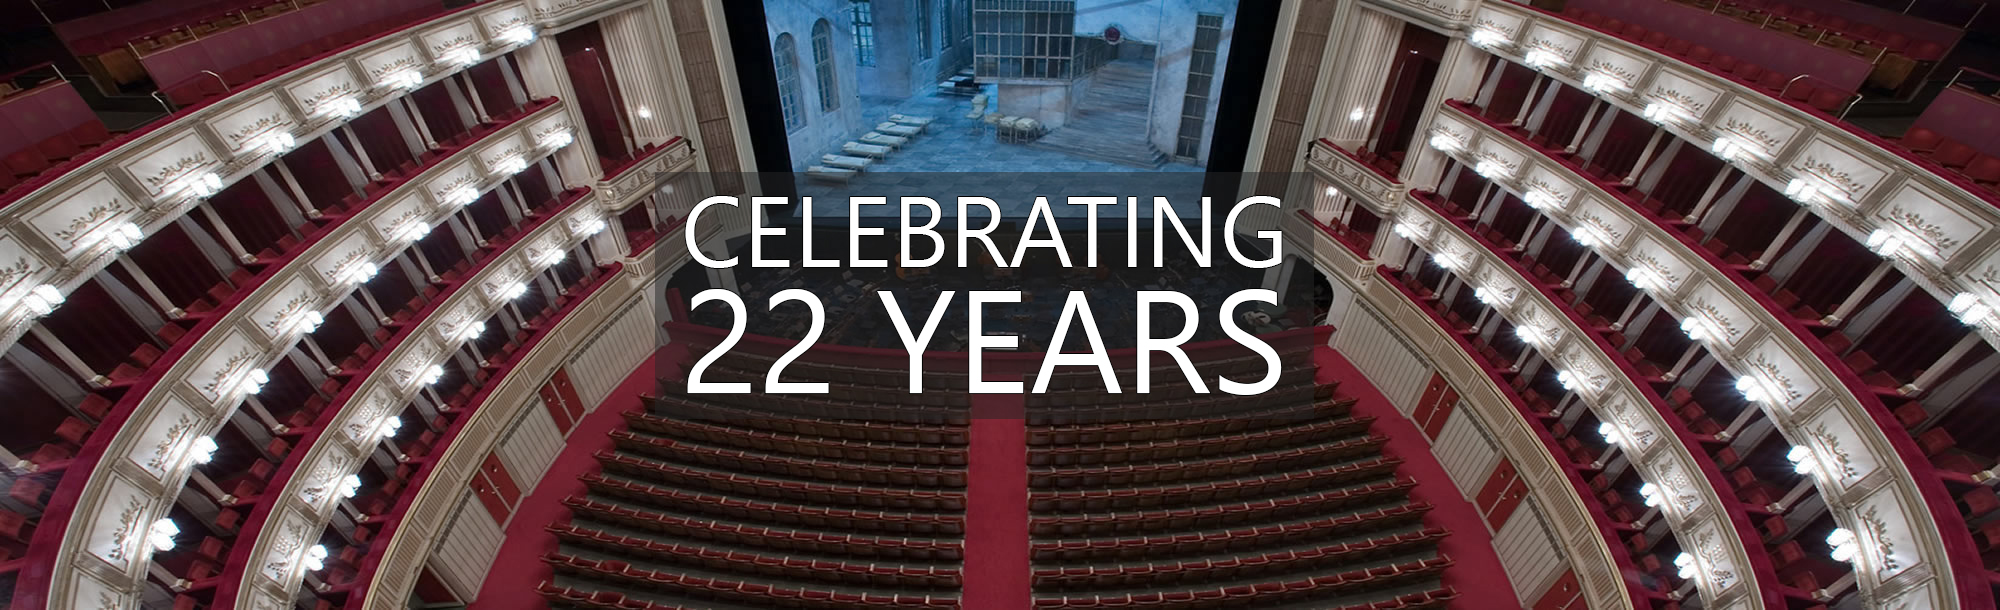 Celebrating 20 Years of Excellence in 2019!